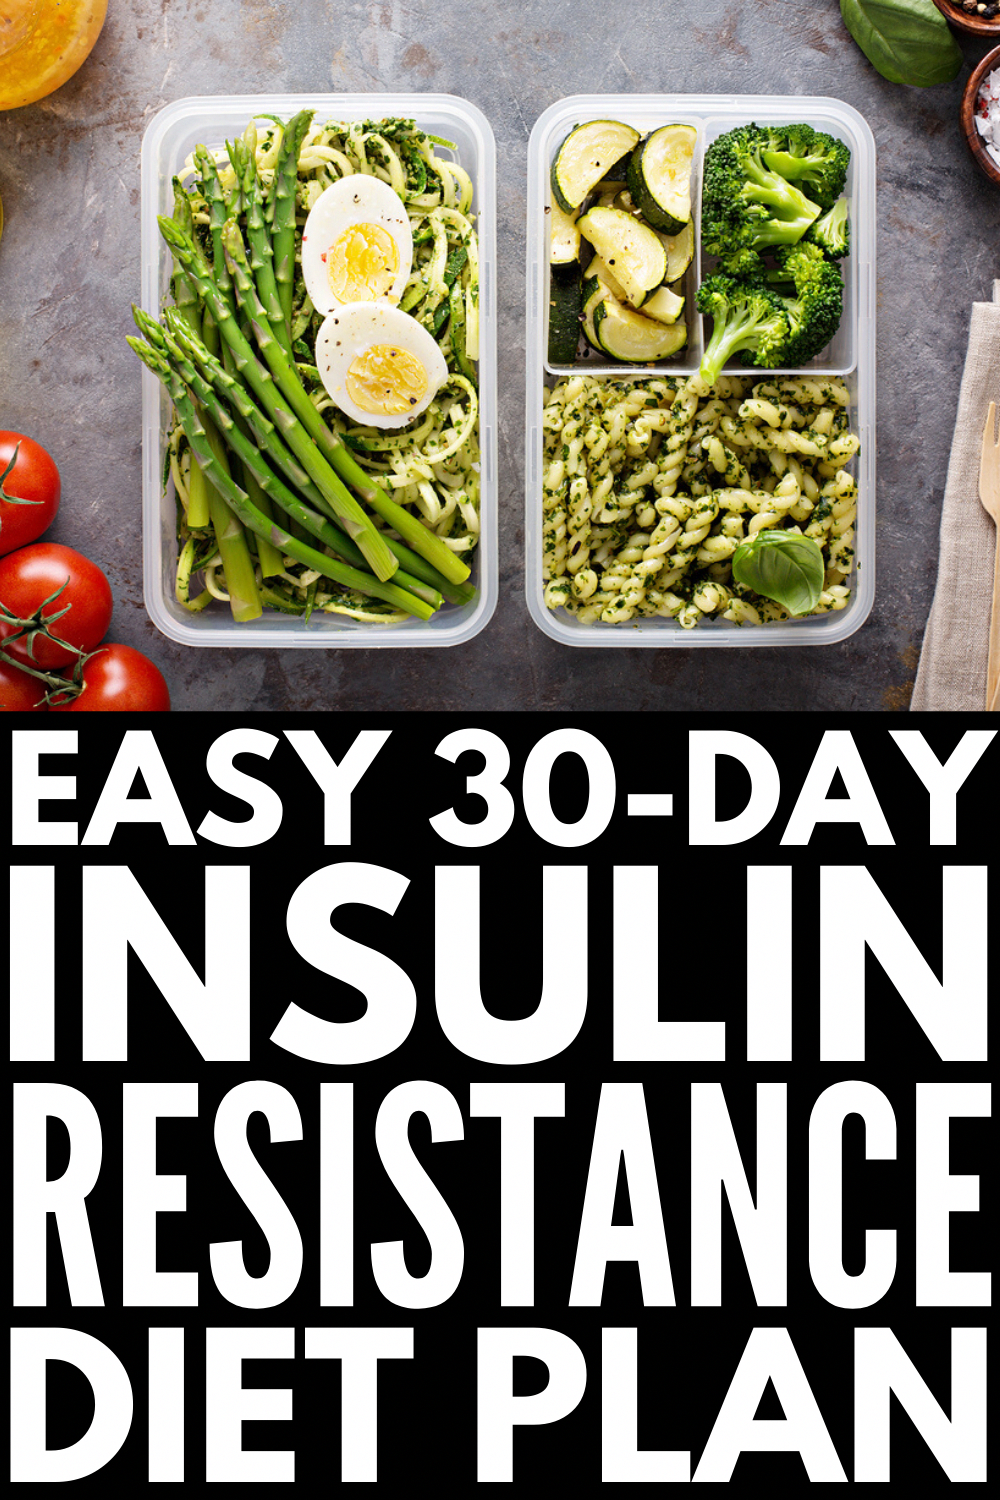 30 Day Insulin Resistance Diet Plan If You Re Looking For Food Lis In 2020 Insulin Resistance Diet Recipes Insulin Resistance Diet Insulin Resistance Diet Food Lists